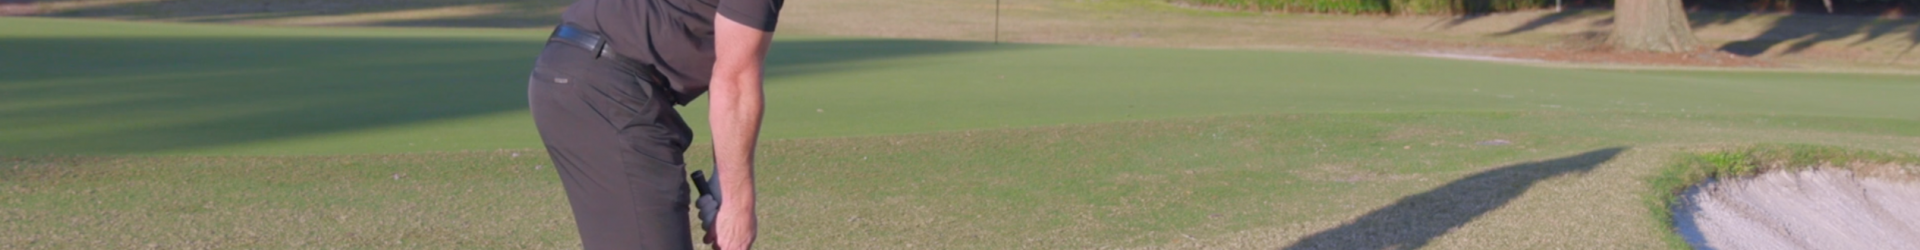 Chipping from a Tight Lie